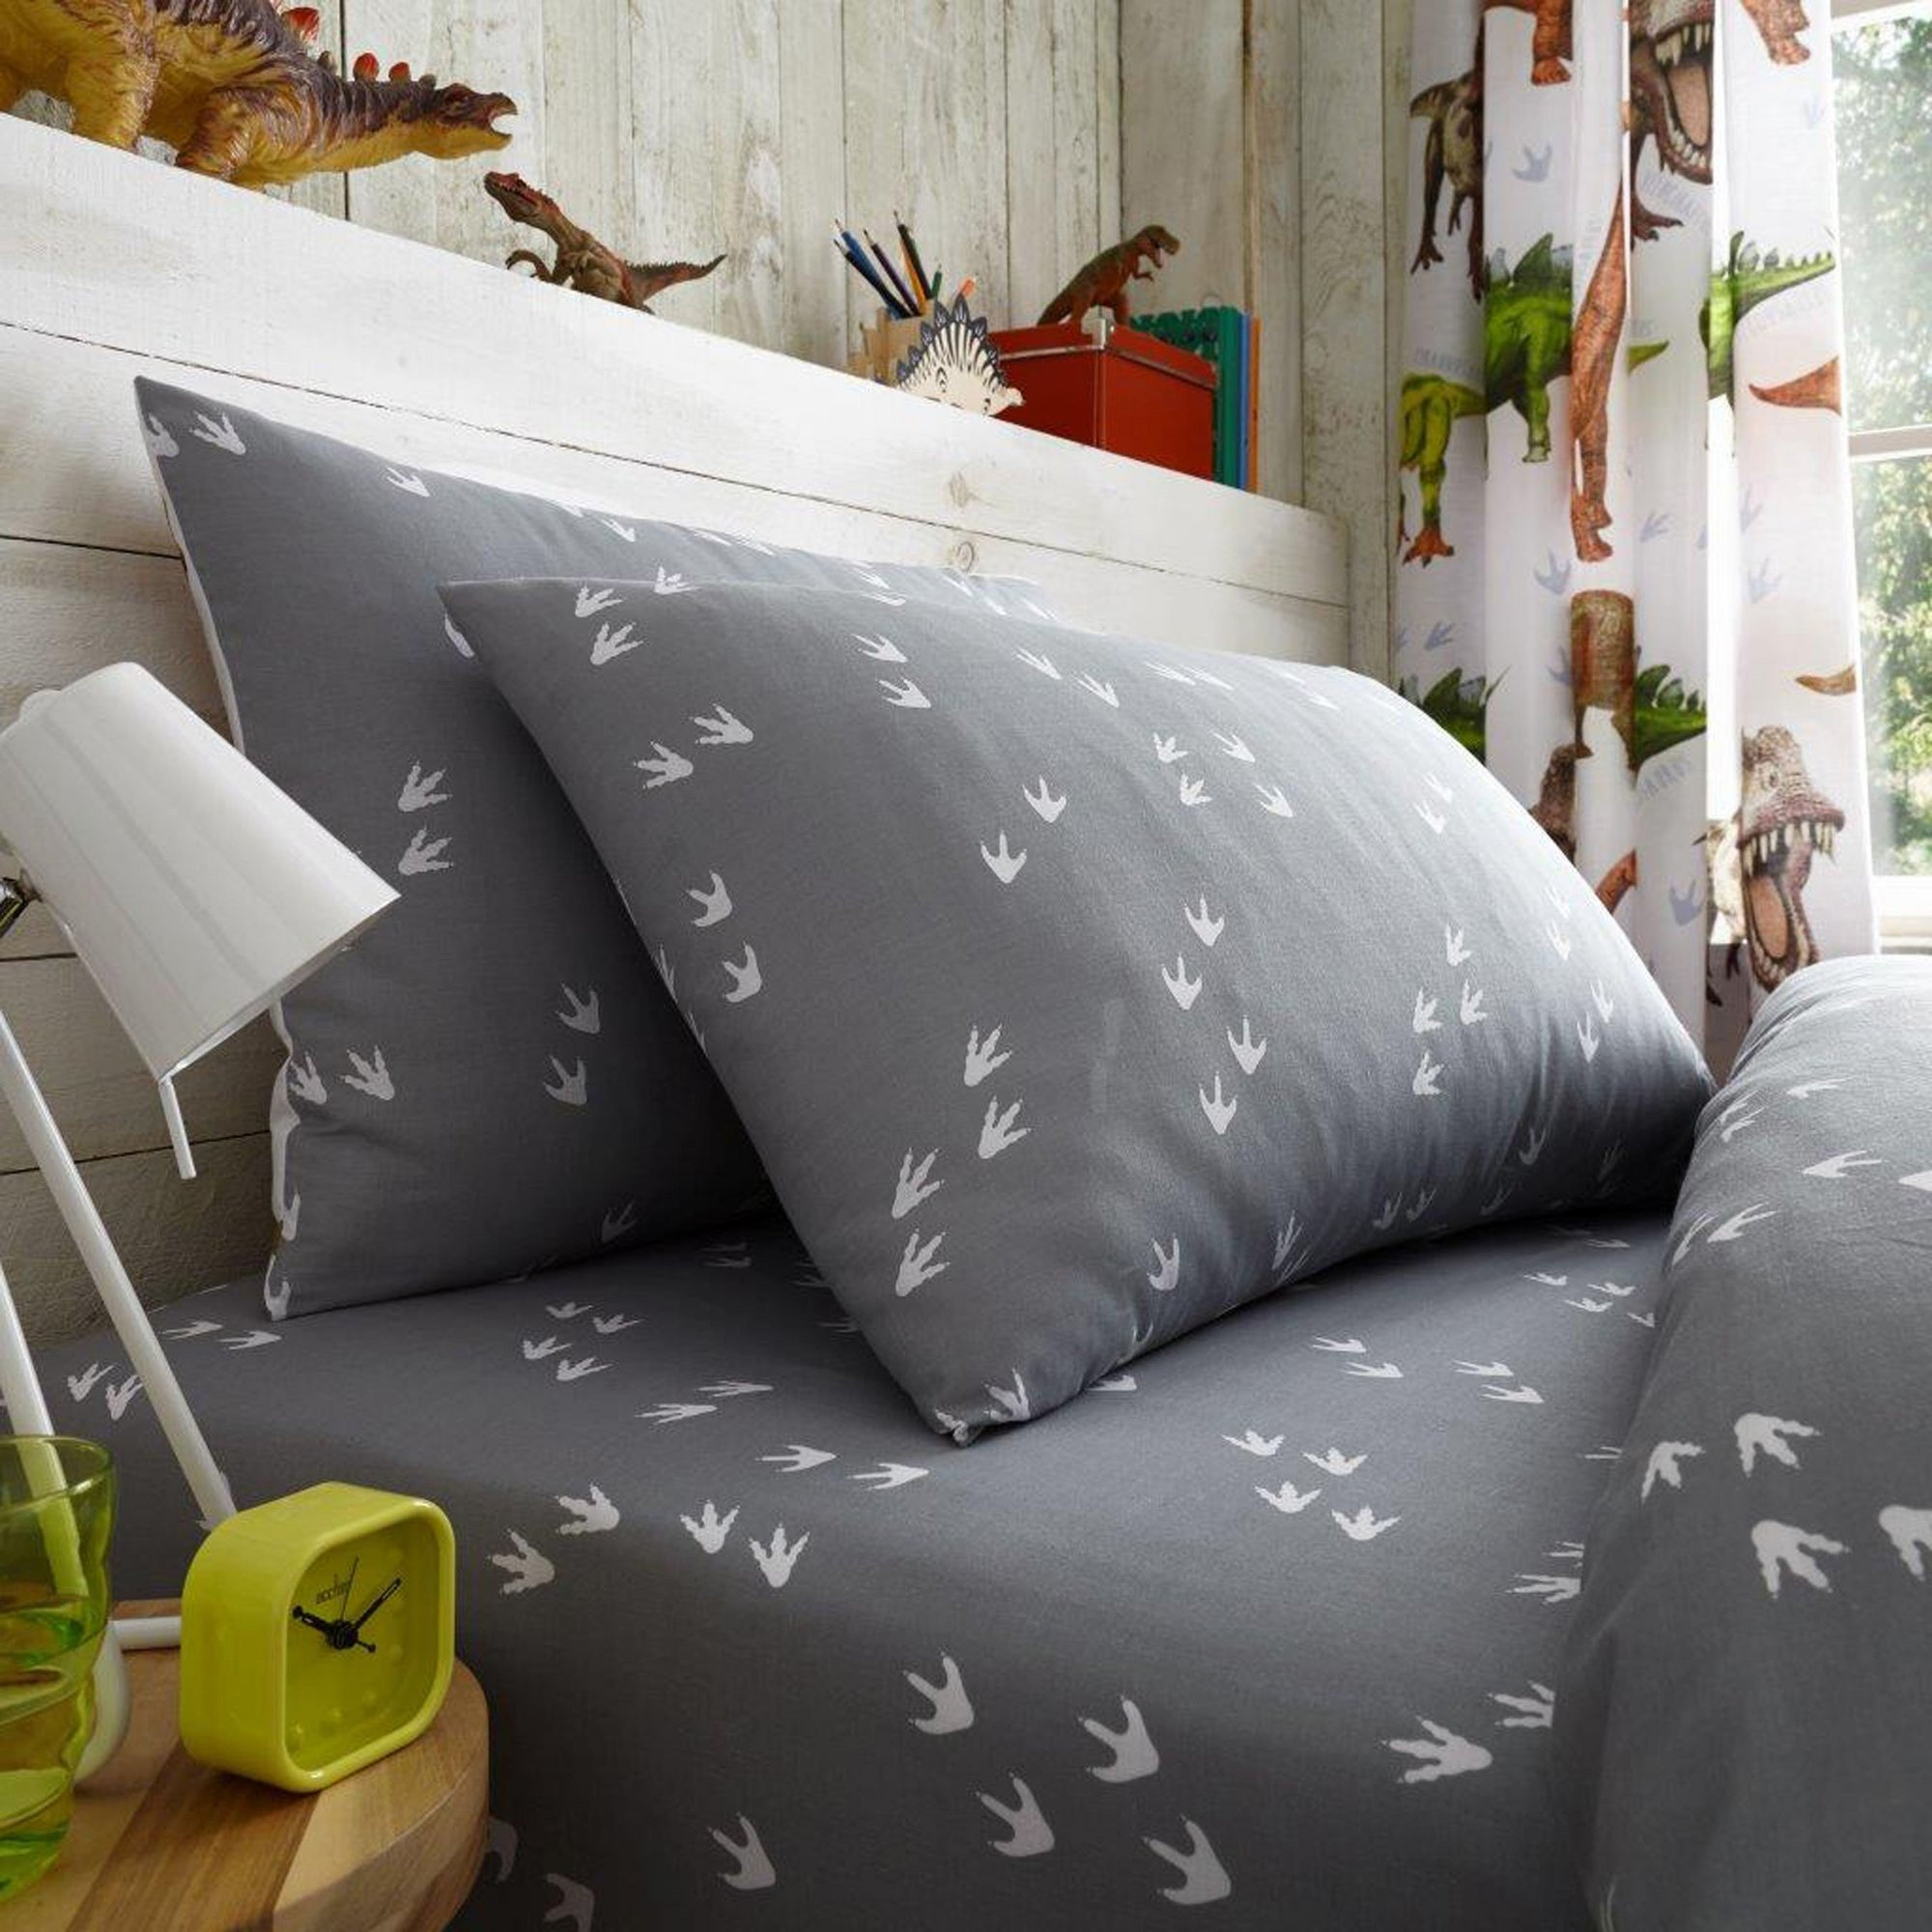 Image of Dinosaur Fitted Sheet